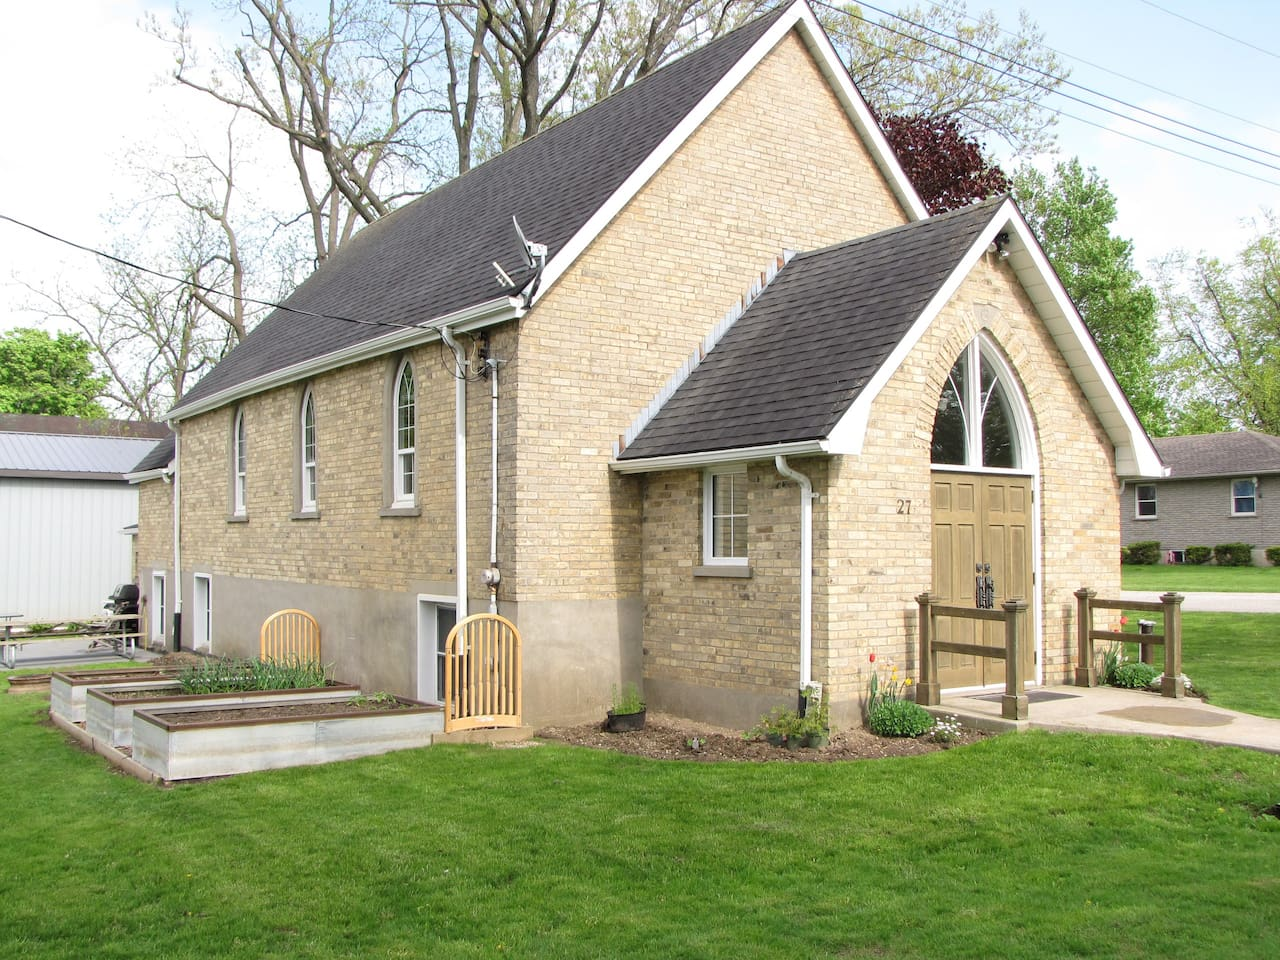 Our home is a converted Anglican Church from the 1800's